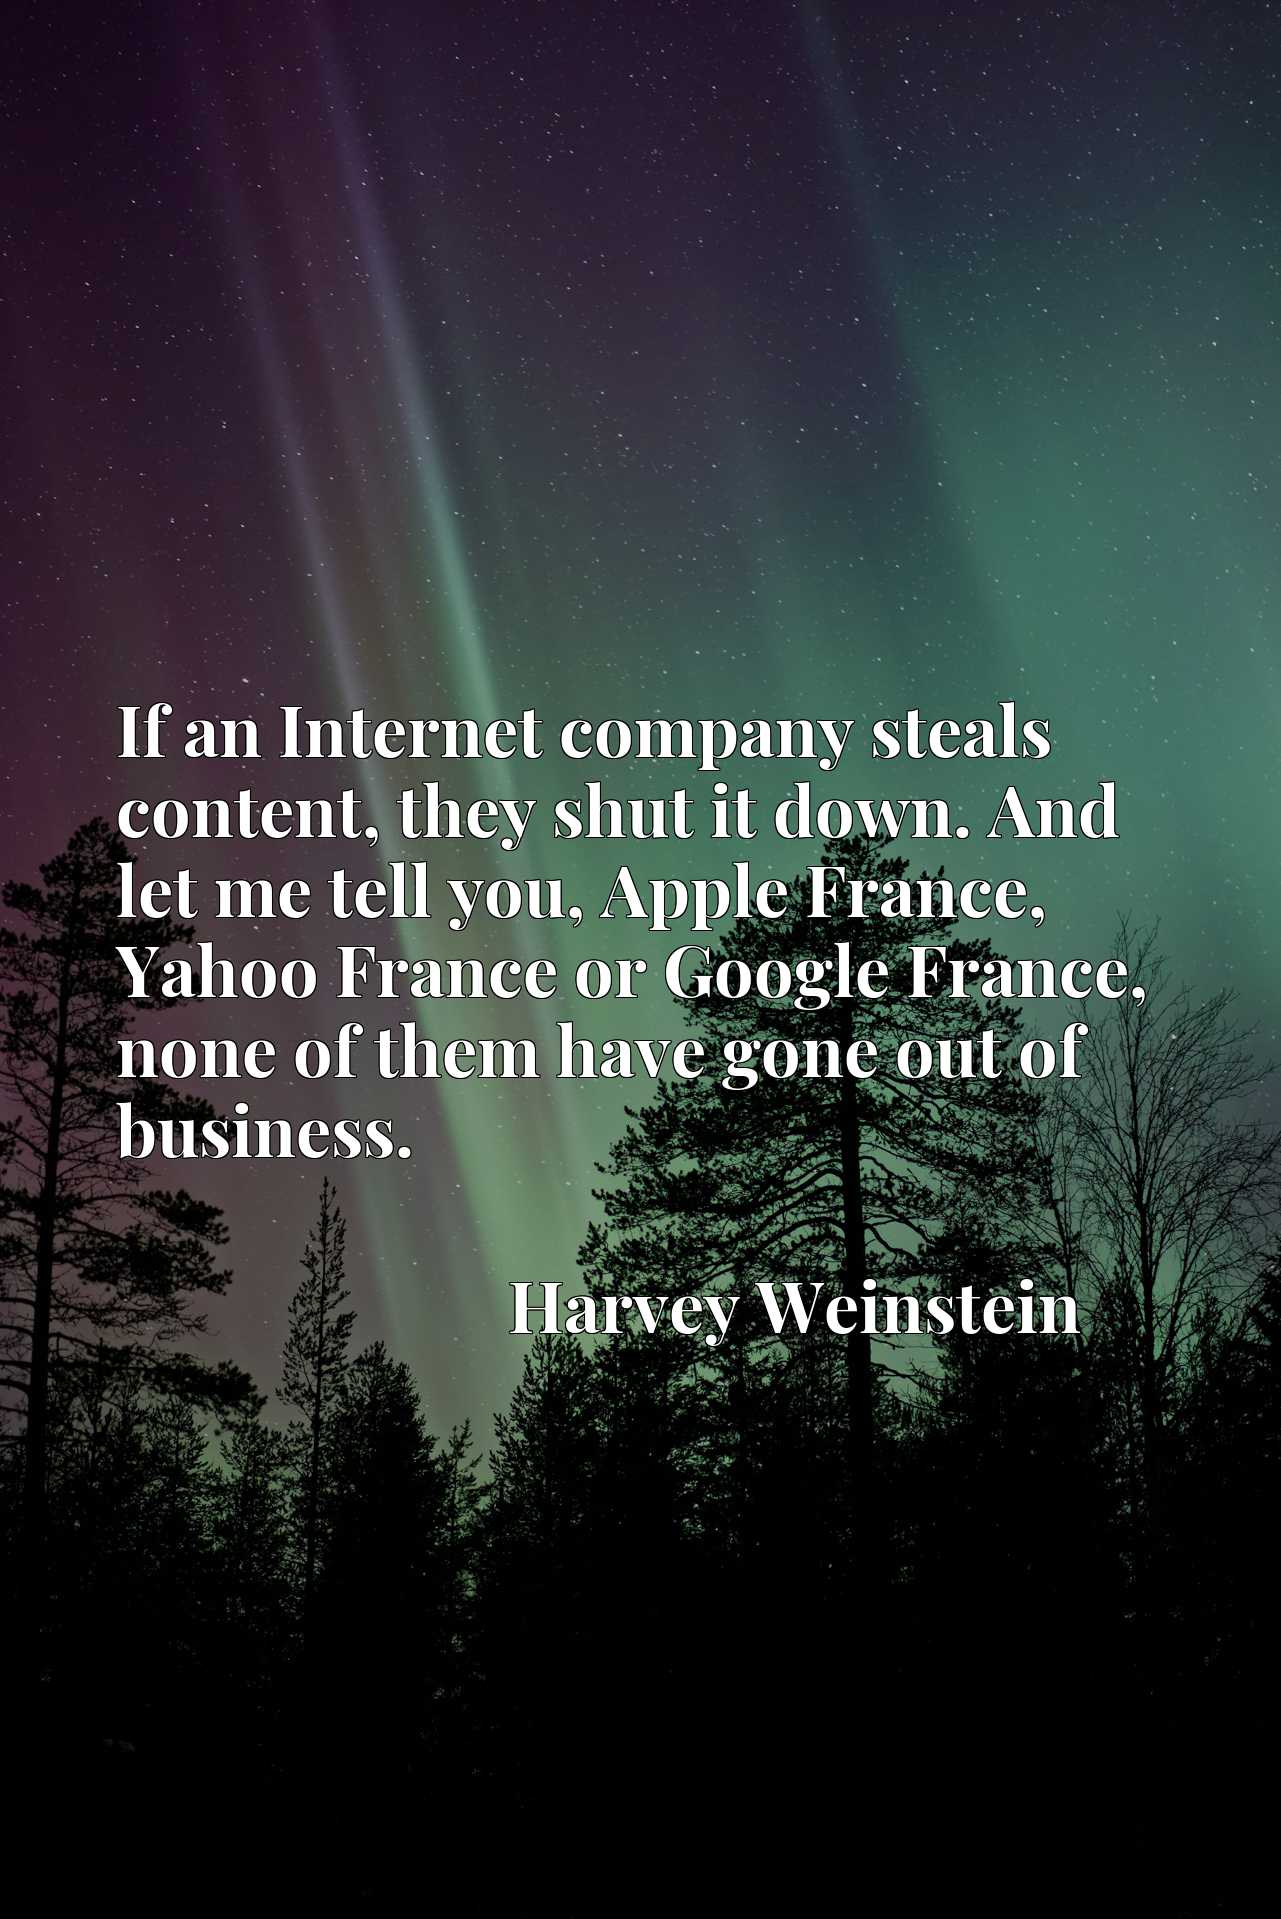 If an Internet company steals content, they shut it down. And let me tell you, Apple France, Yahoo France or Google France, none of them have gone out of business.